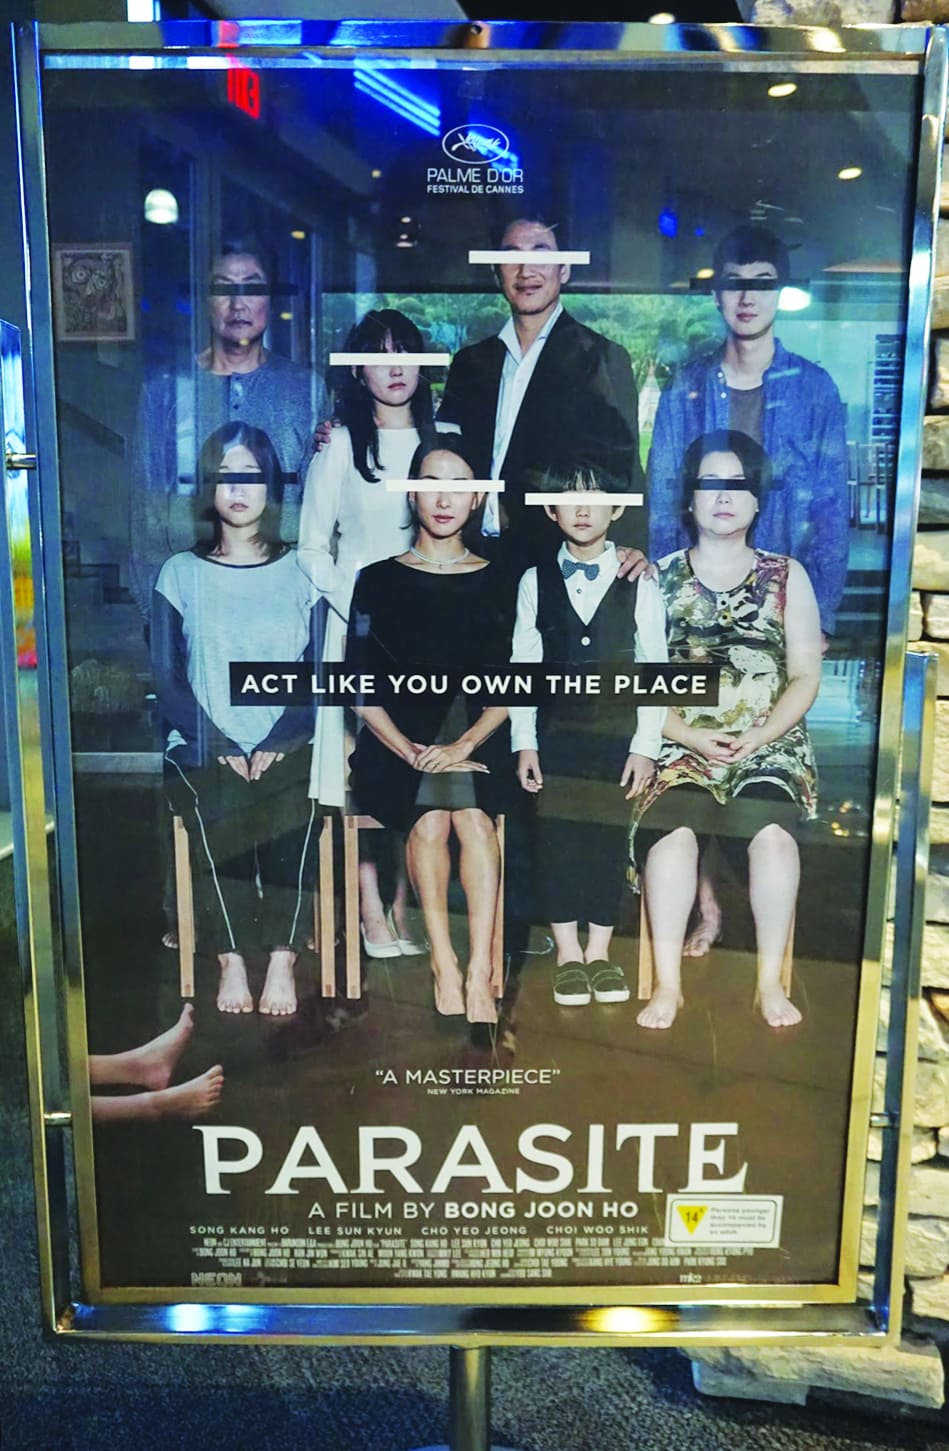 Parasite will get under your skin